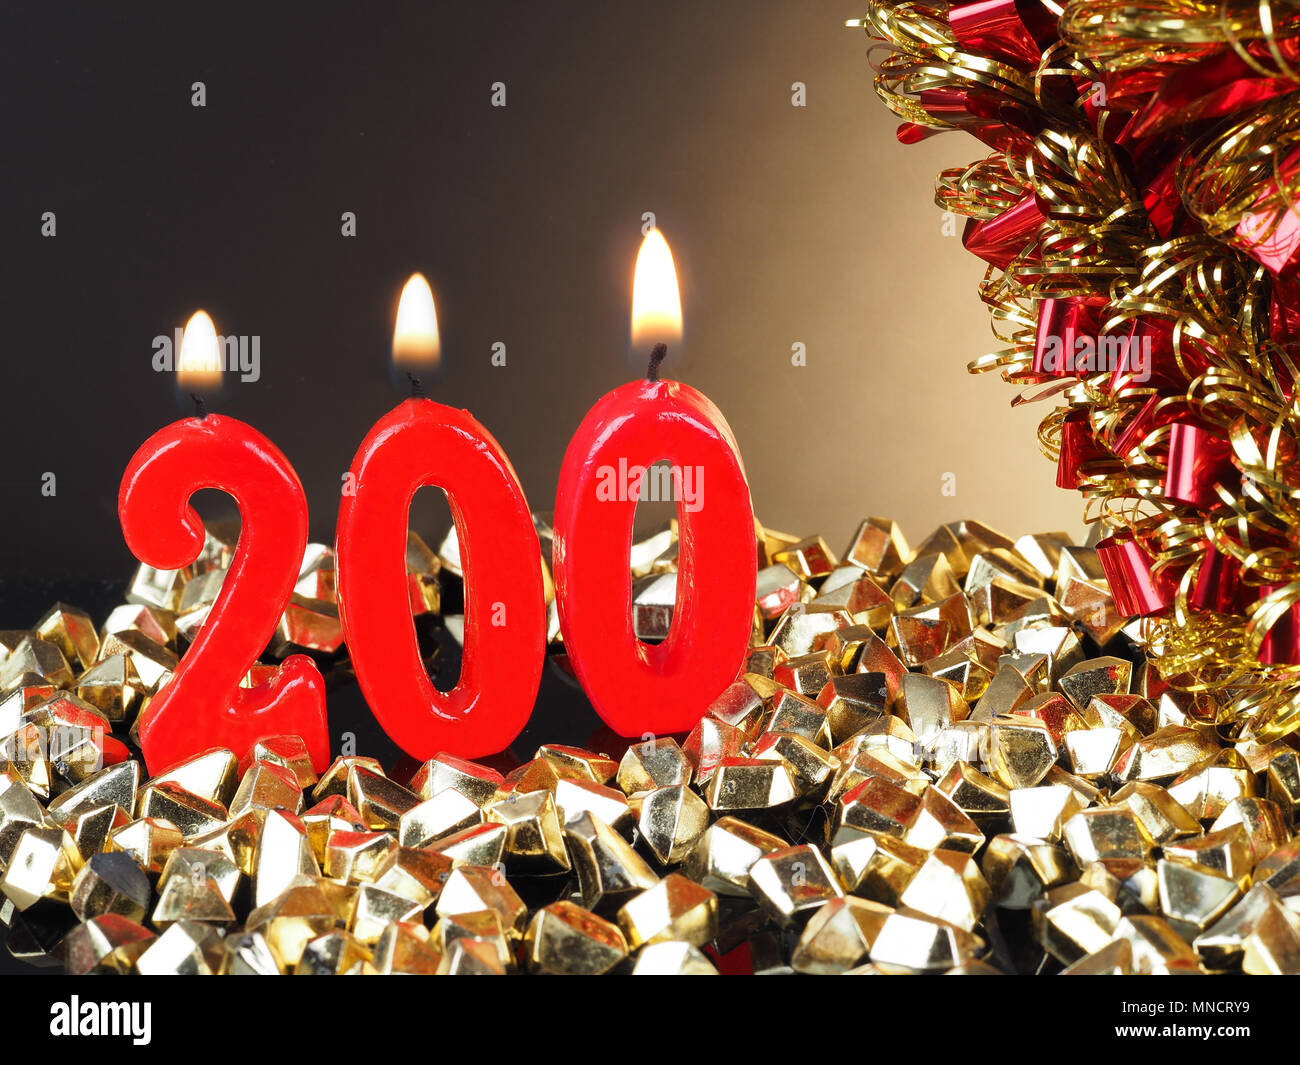 Lit En 200 Birthday Anniversary Candle Showing Nr 200 Lit Red Candle Good